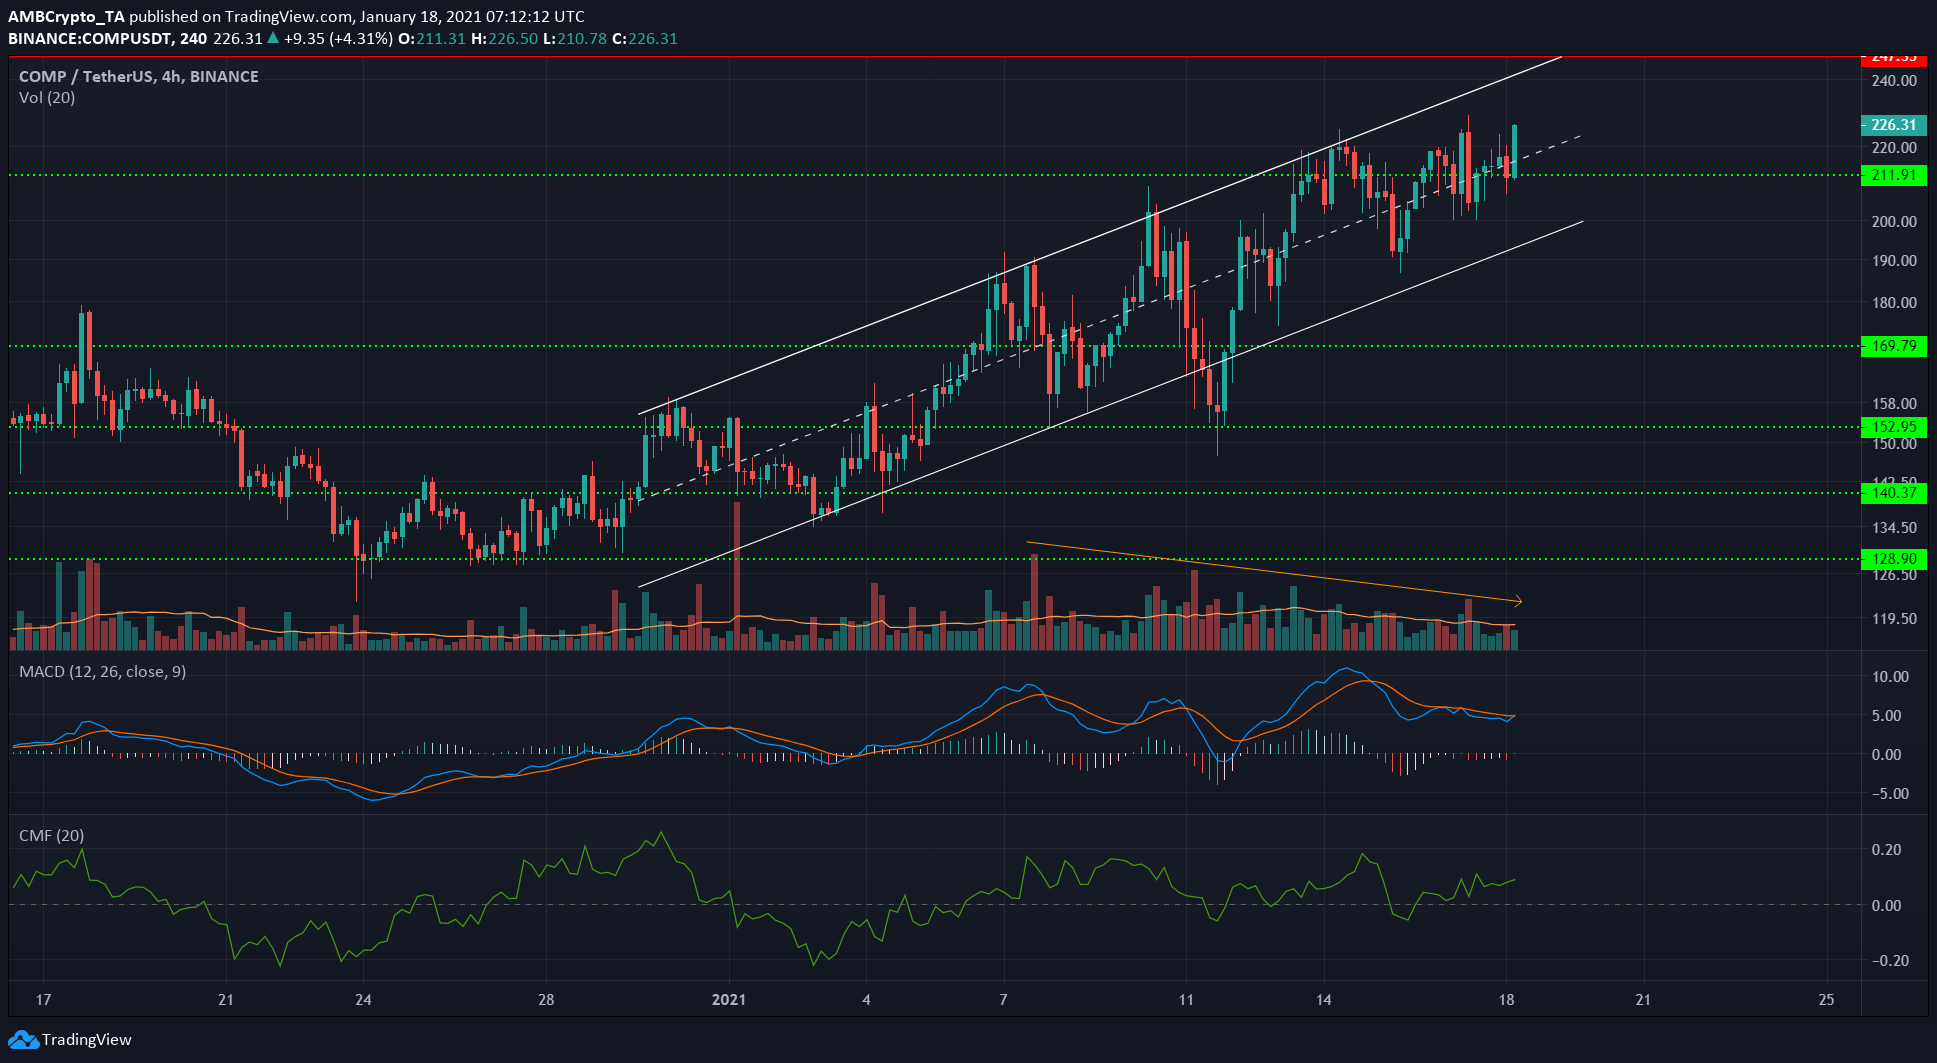 Bitcoin Cash, IOTA, Compound Price Analysis: 18 January